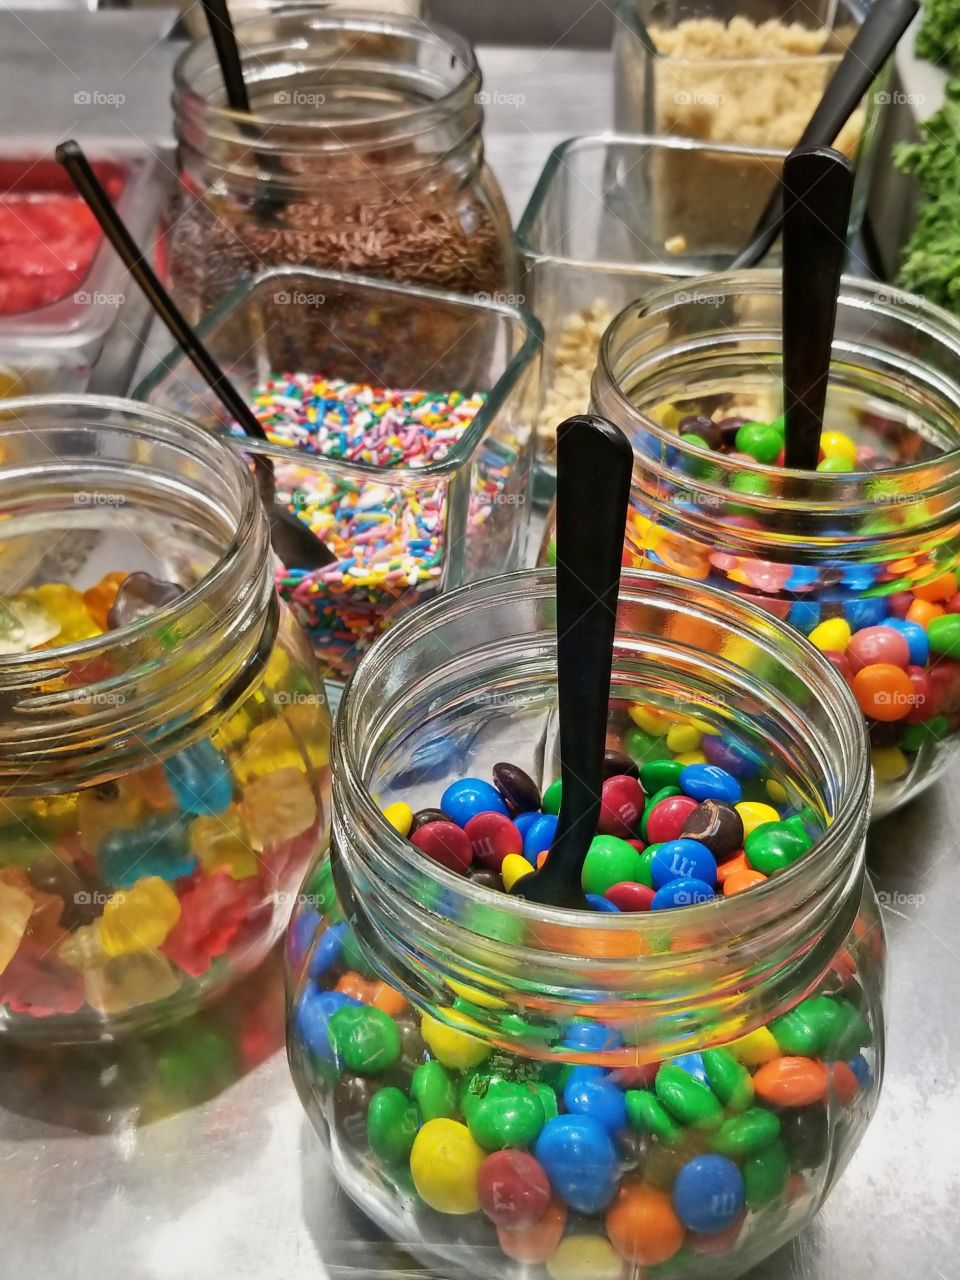 Assortment or toppings for Ice cream